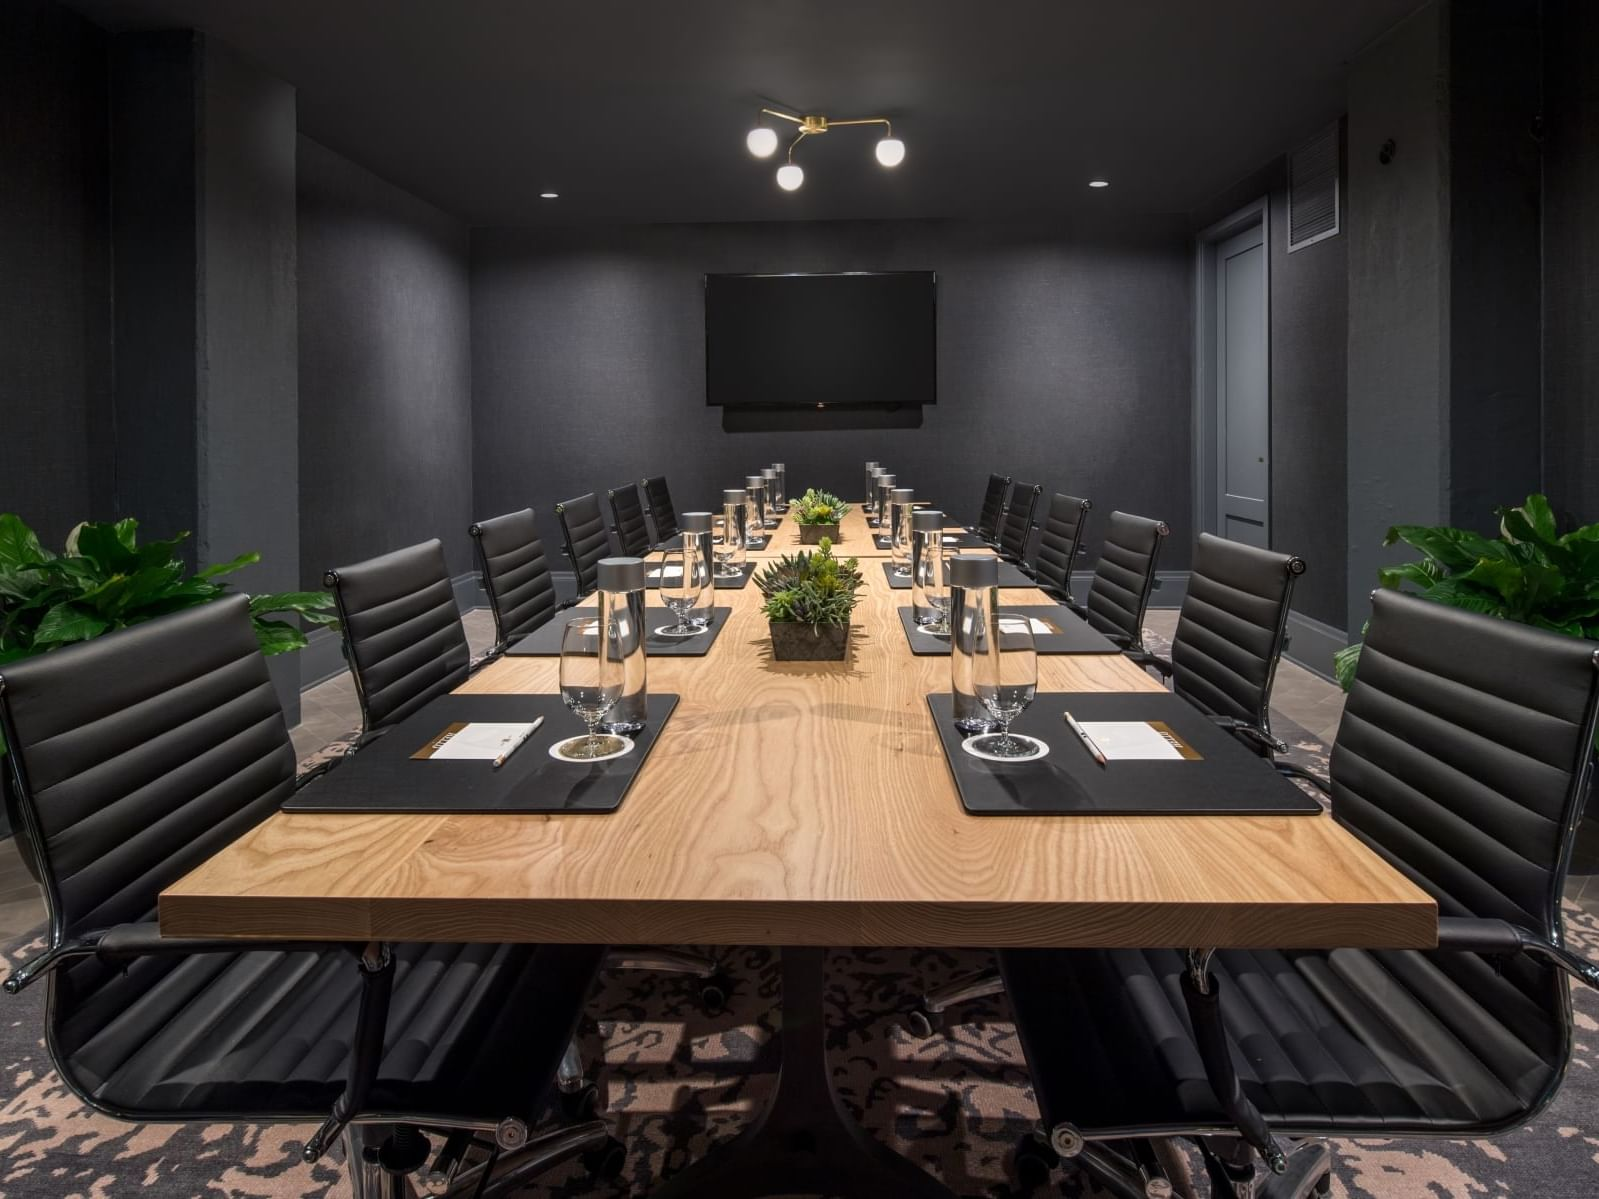 conference room with table, chairs and television mounted on wall